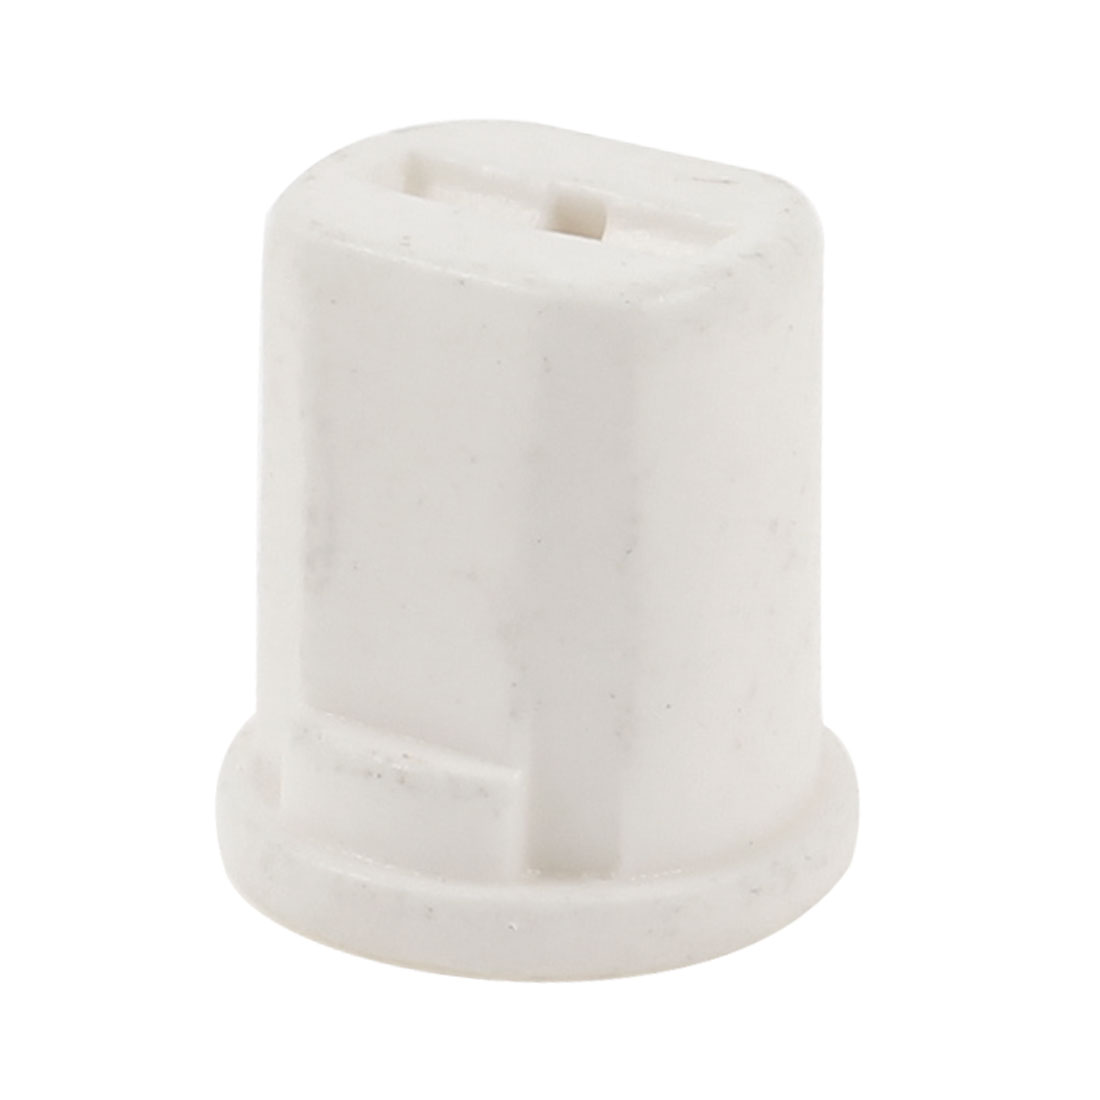 9mm Diameter White Ceramic Garden Lawn Water Flat Jet Spray Nozzles